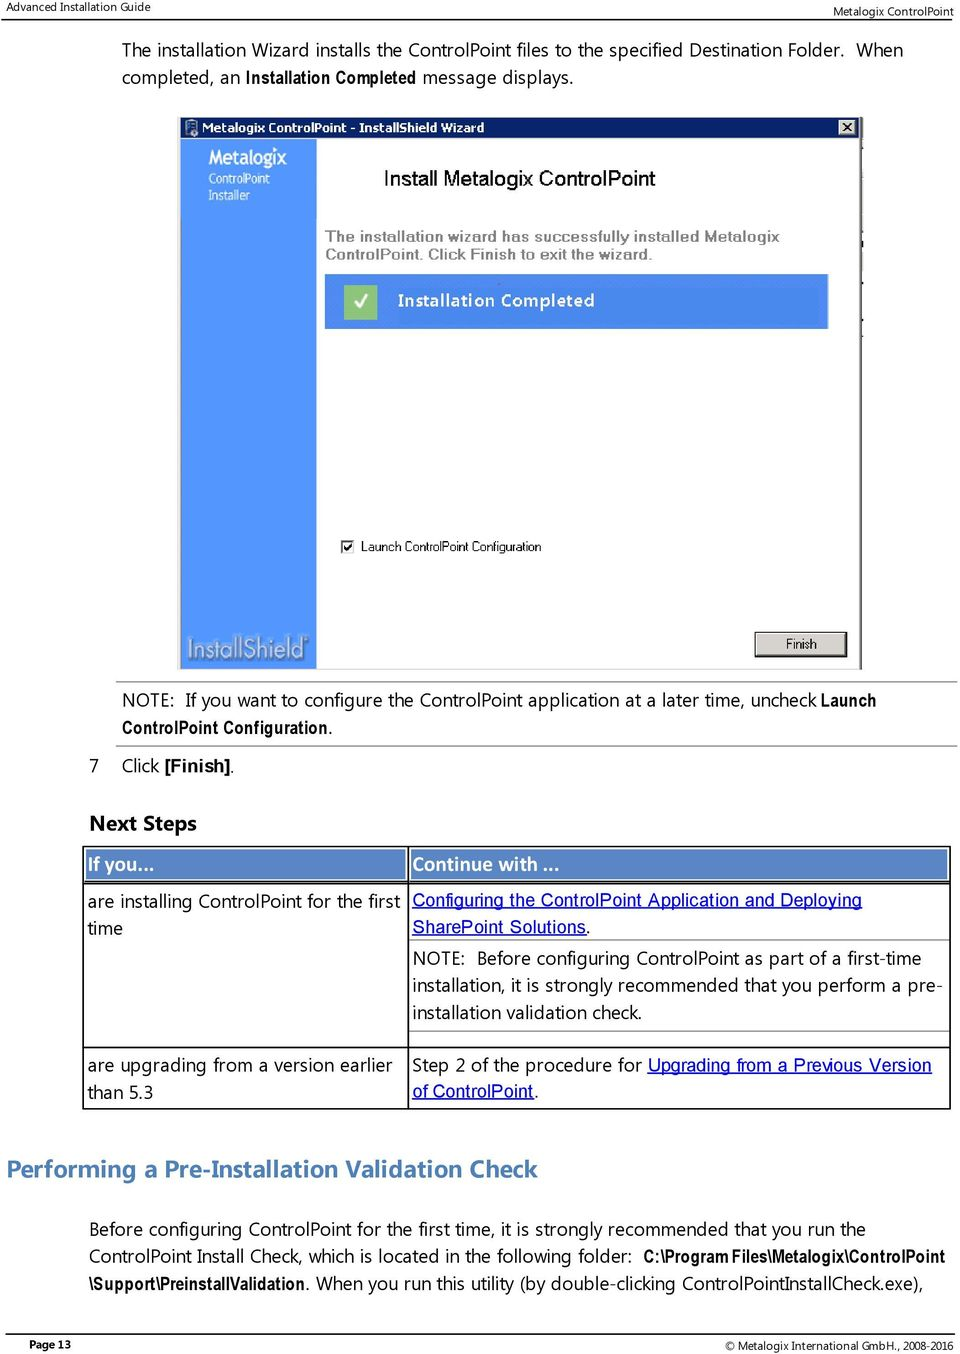 .. are installing ControlPoint for the first Configuring the ControlPoint Application and Deploying SharePoint Solutions.